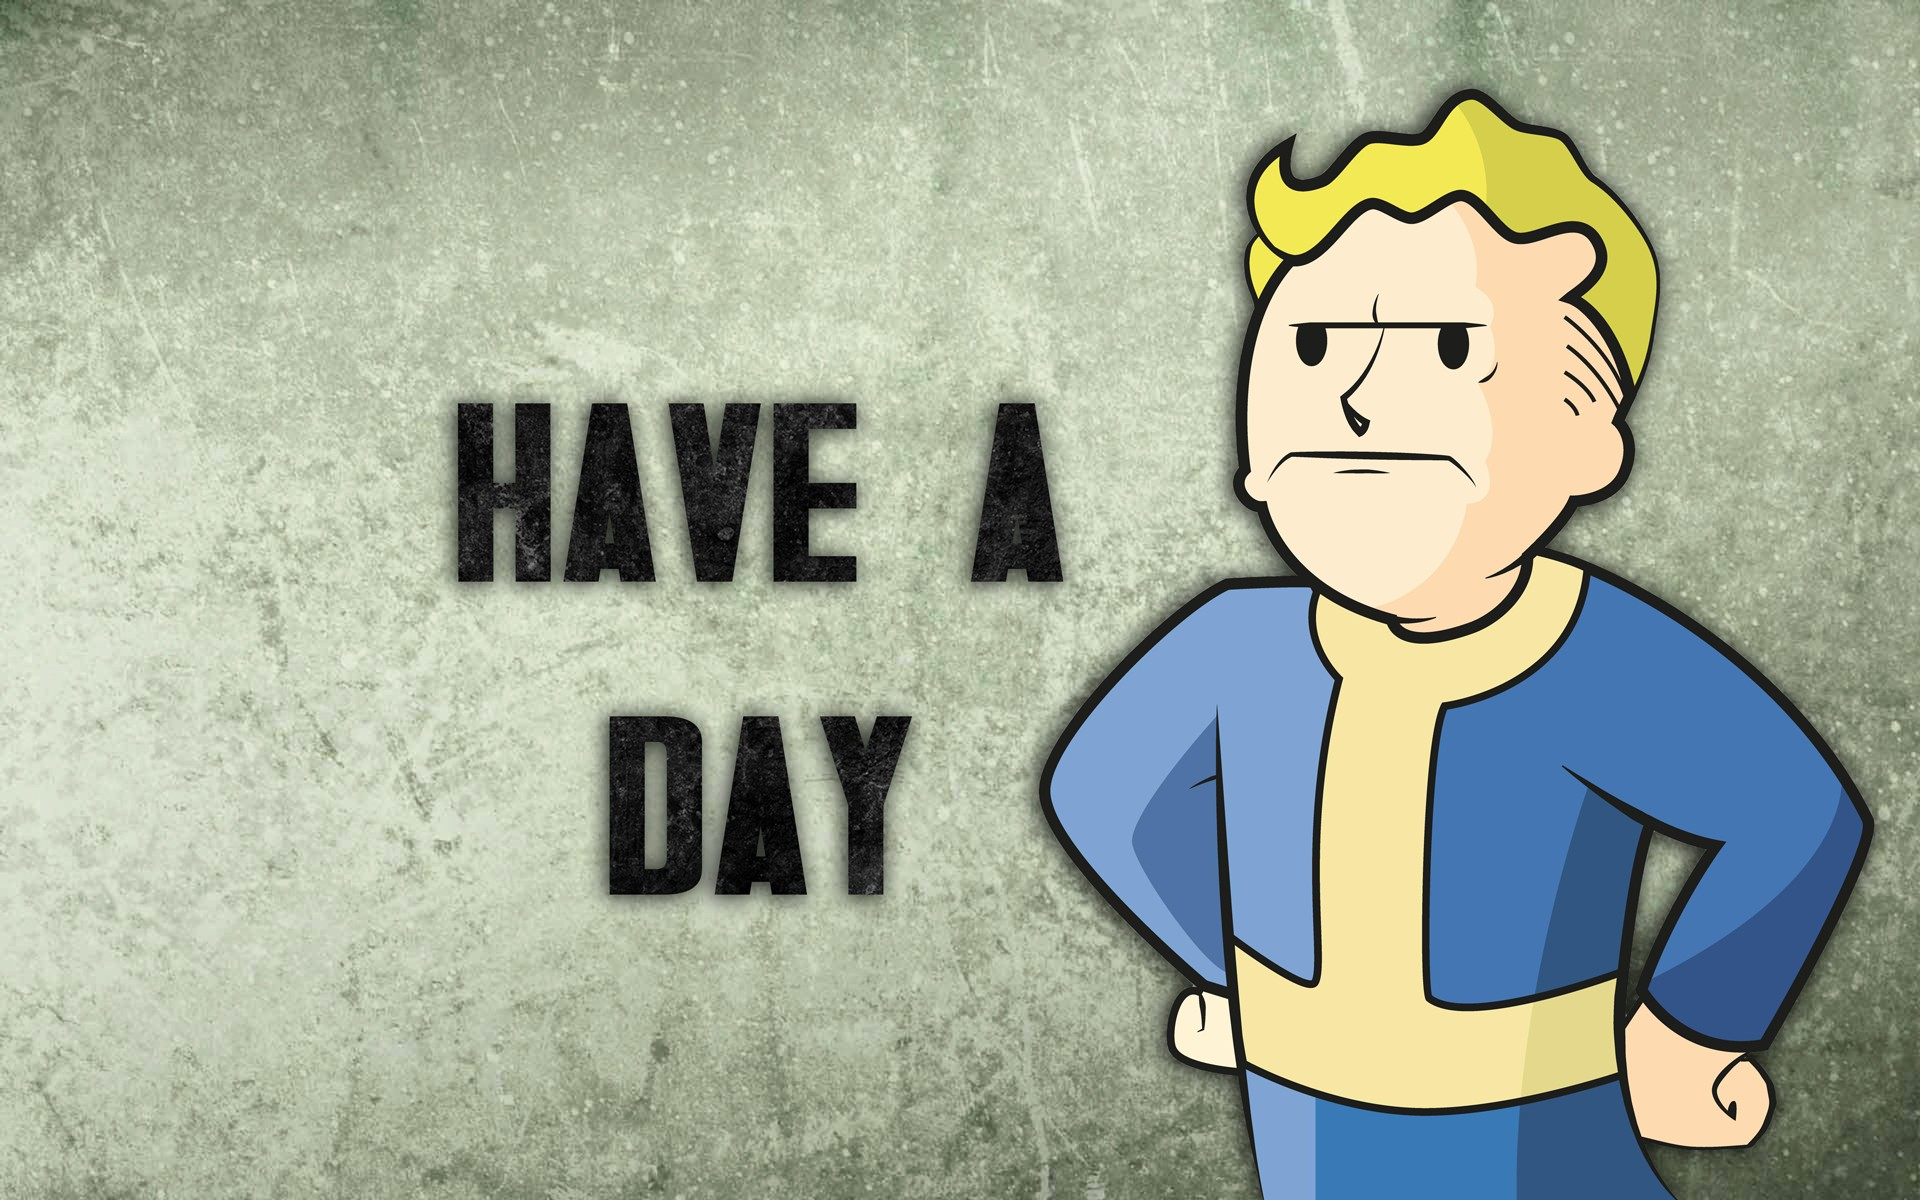 Fall Out Boy Android Wallpaper Fallout Vault Boy Wallpaper 183 ① Download Free Amazing High